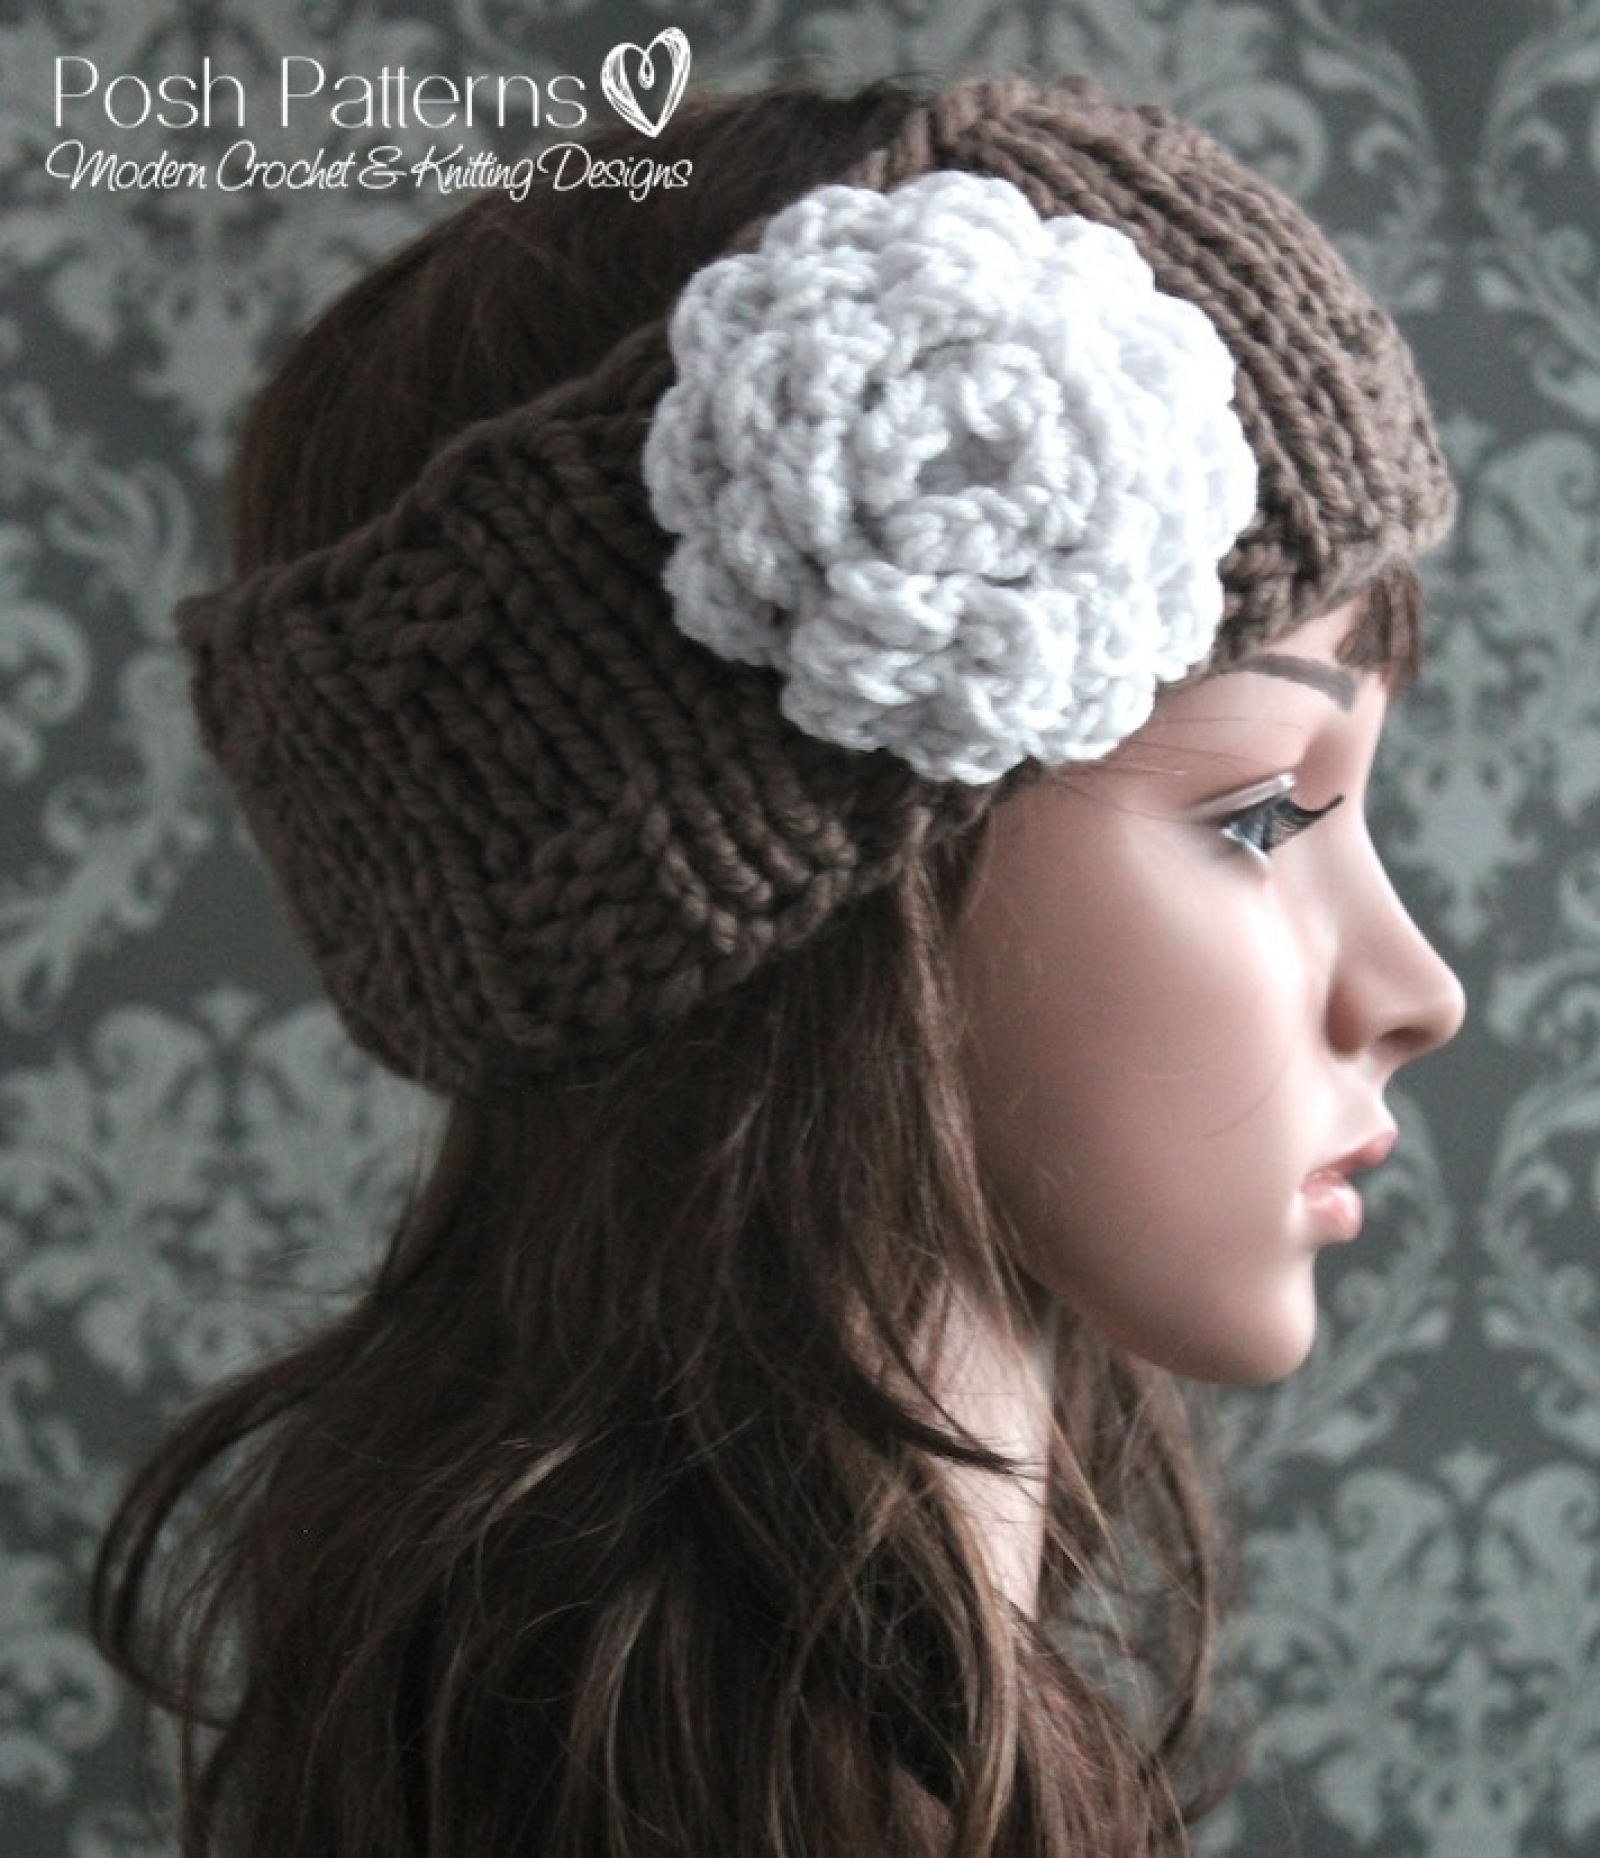 Knit Headband Pattern With Crochet Flower : Headband Knitting Pattern - Knit Ear Warmer Pattern